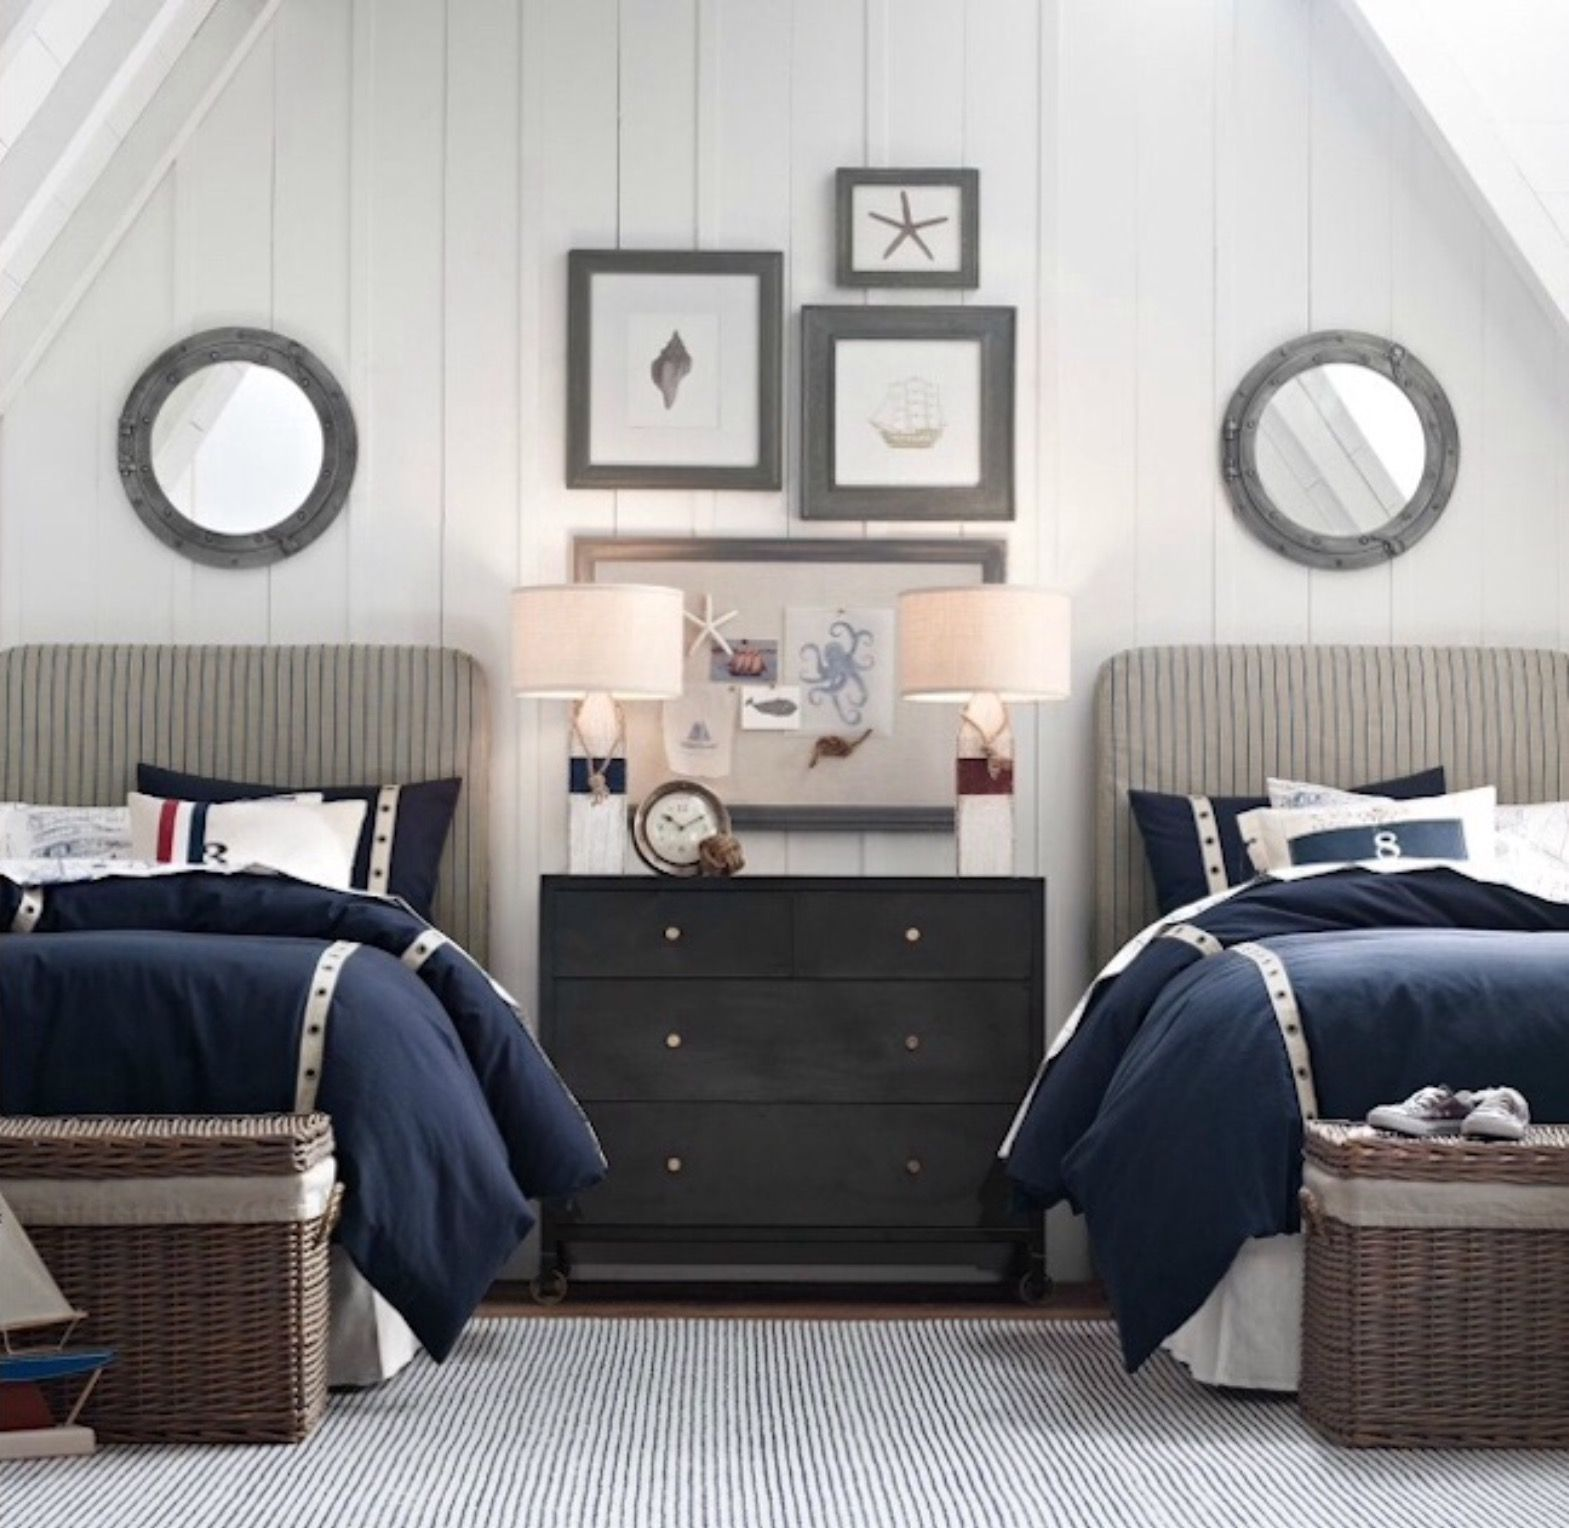 cool architecture bedroom nautical amazing nice room plan in interior home simple under classy design decor very fresh